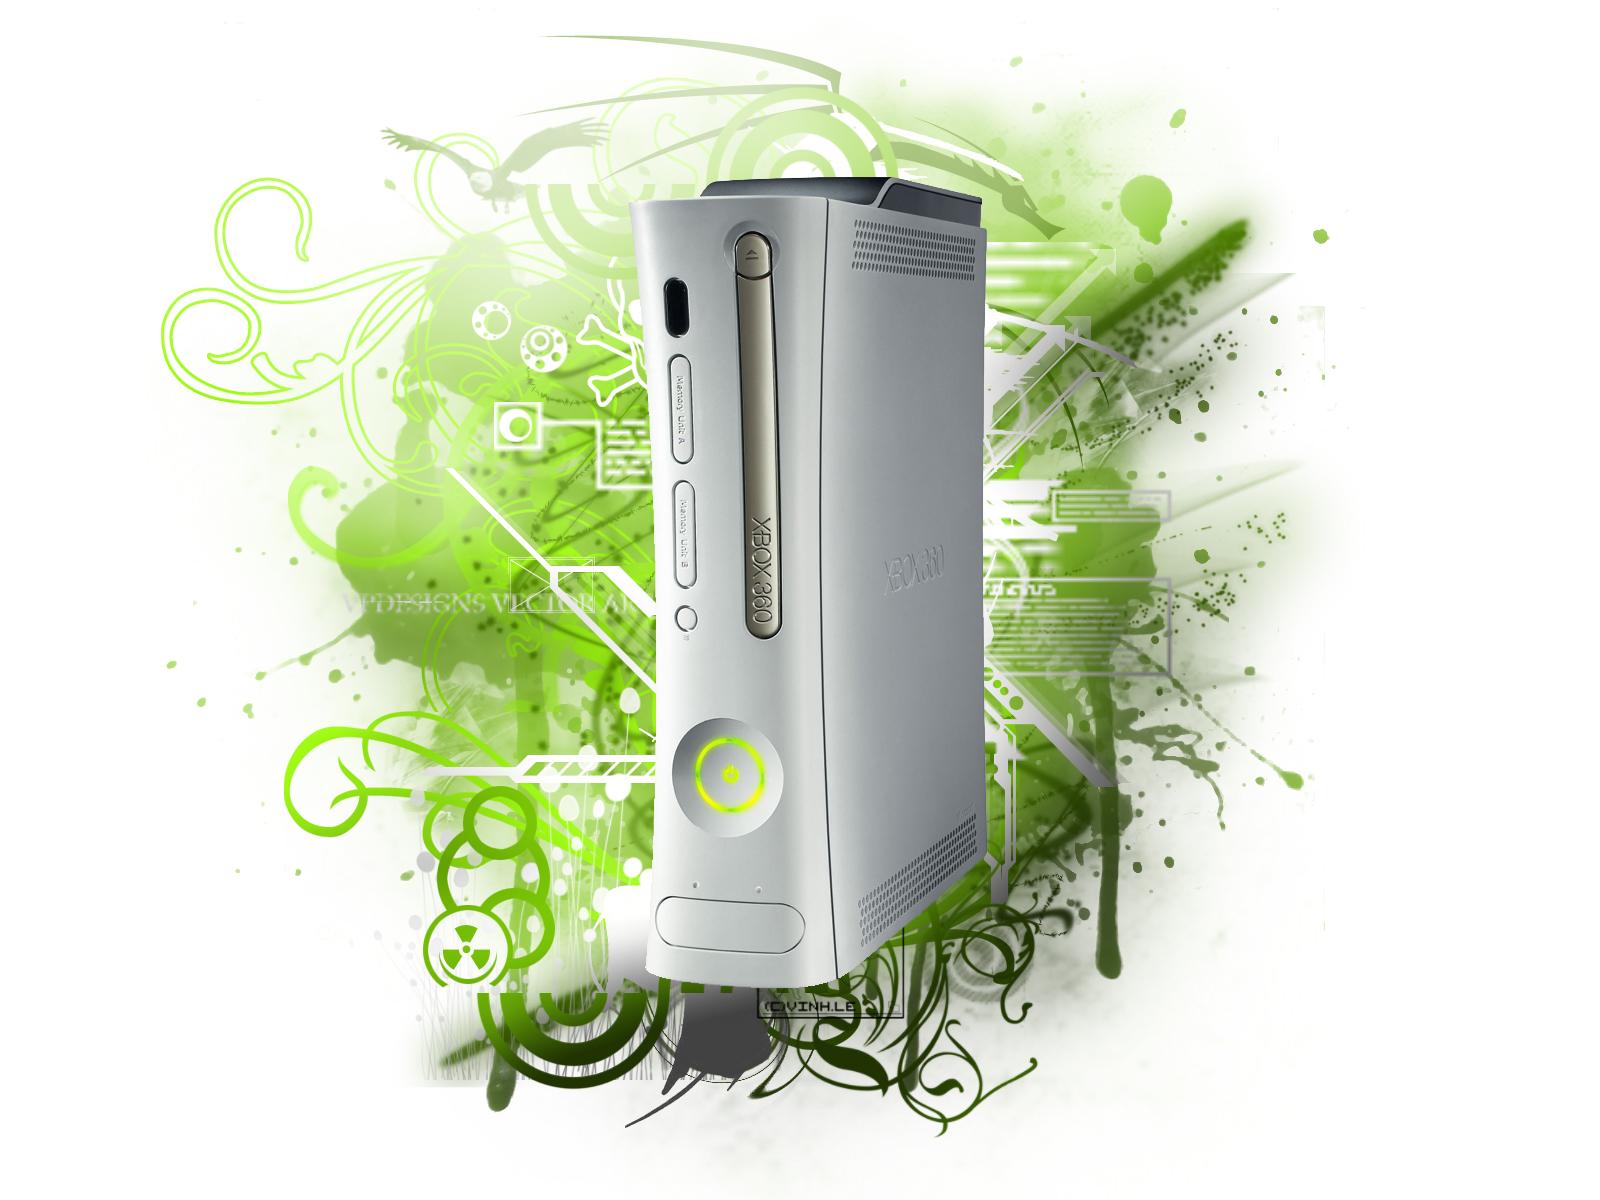 Wallpapers Box Xbox360 Green And Black Hd Wallpapers